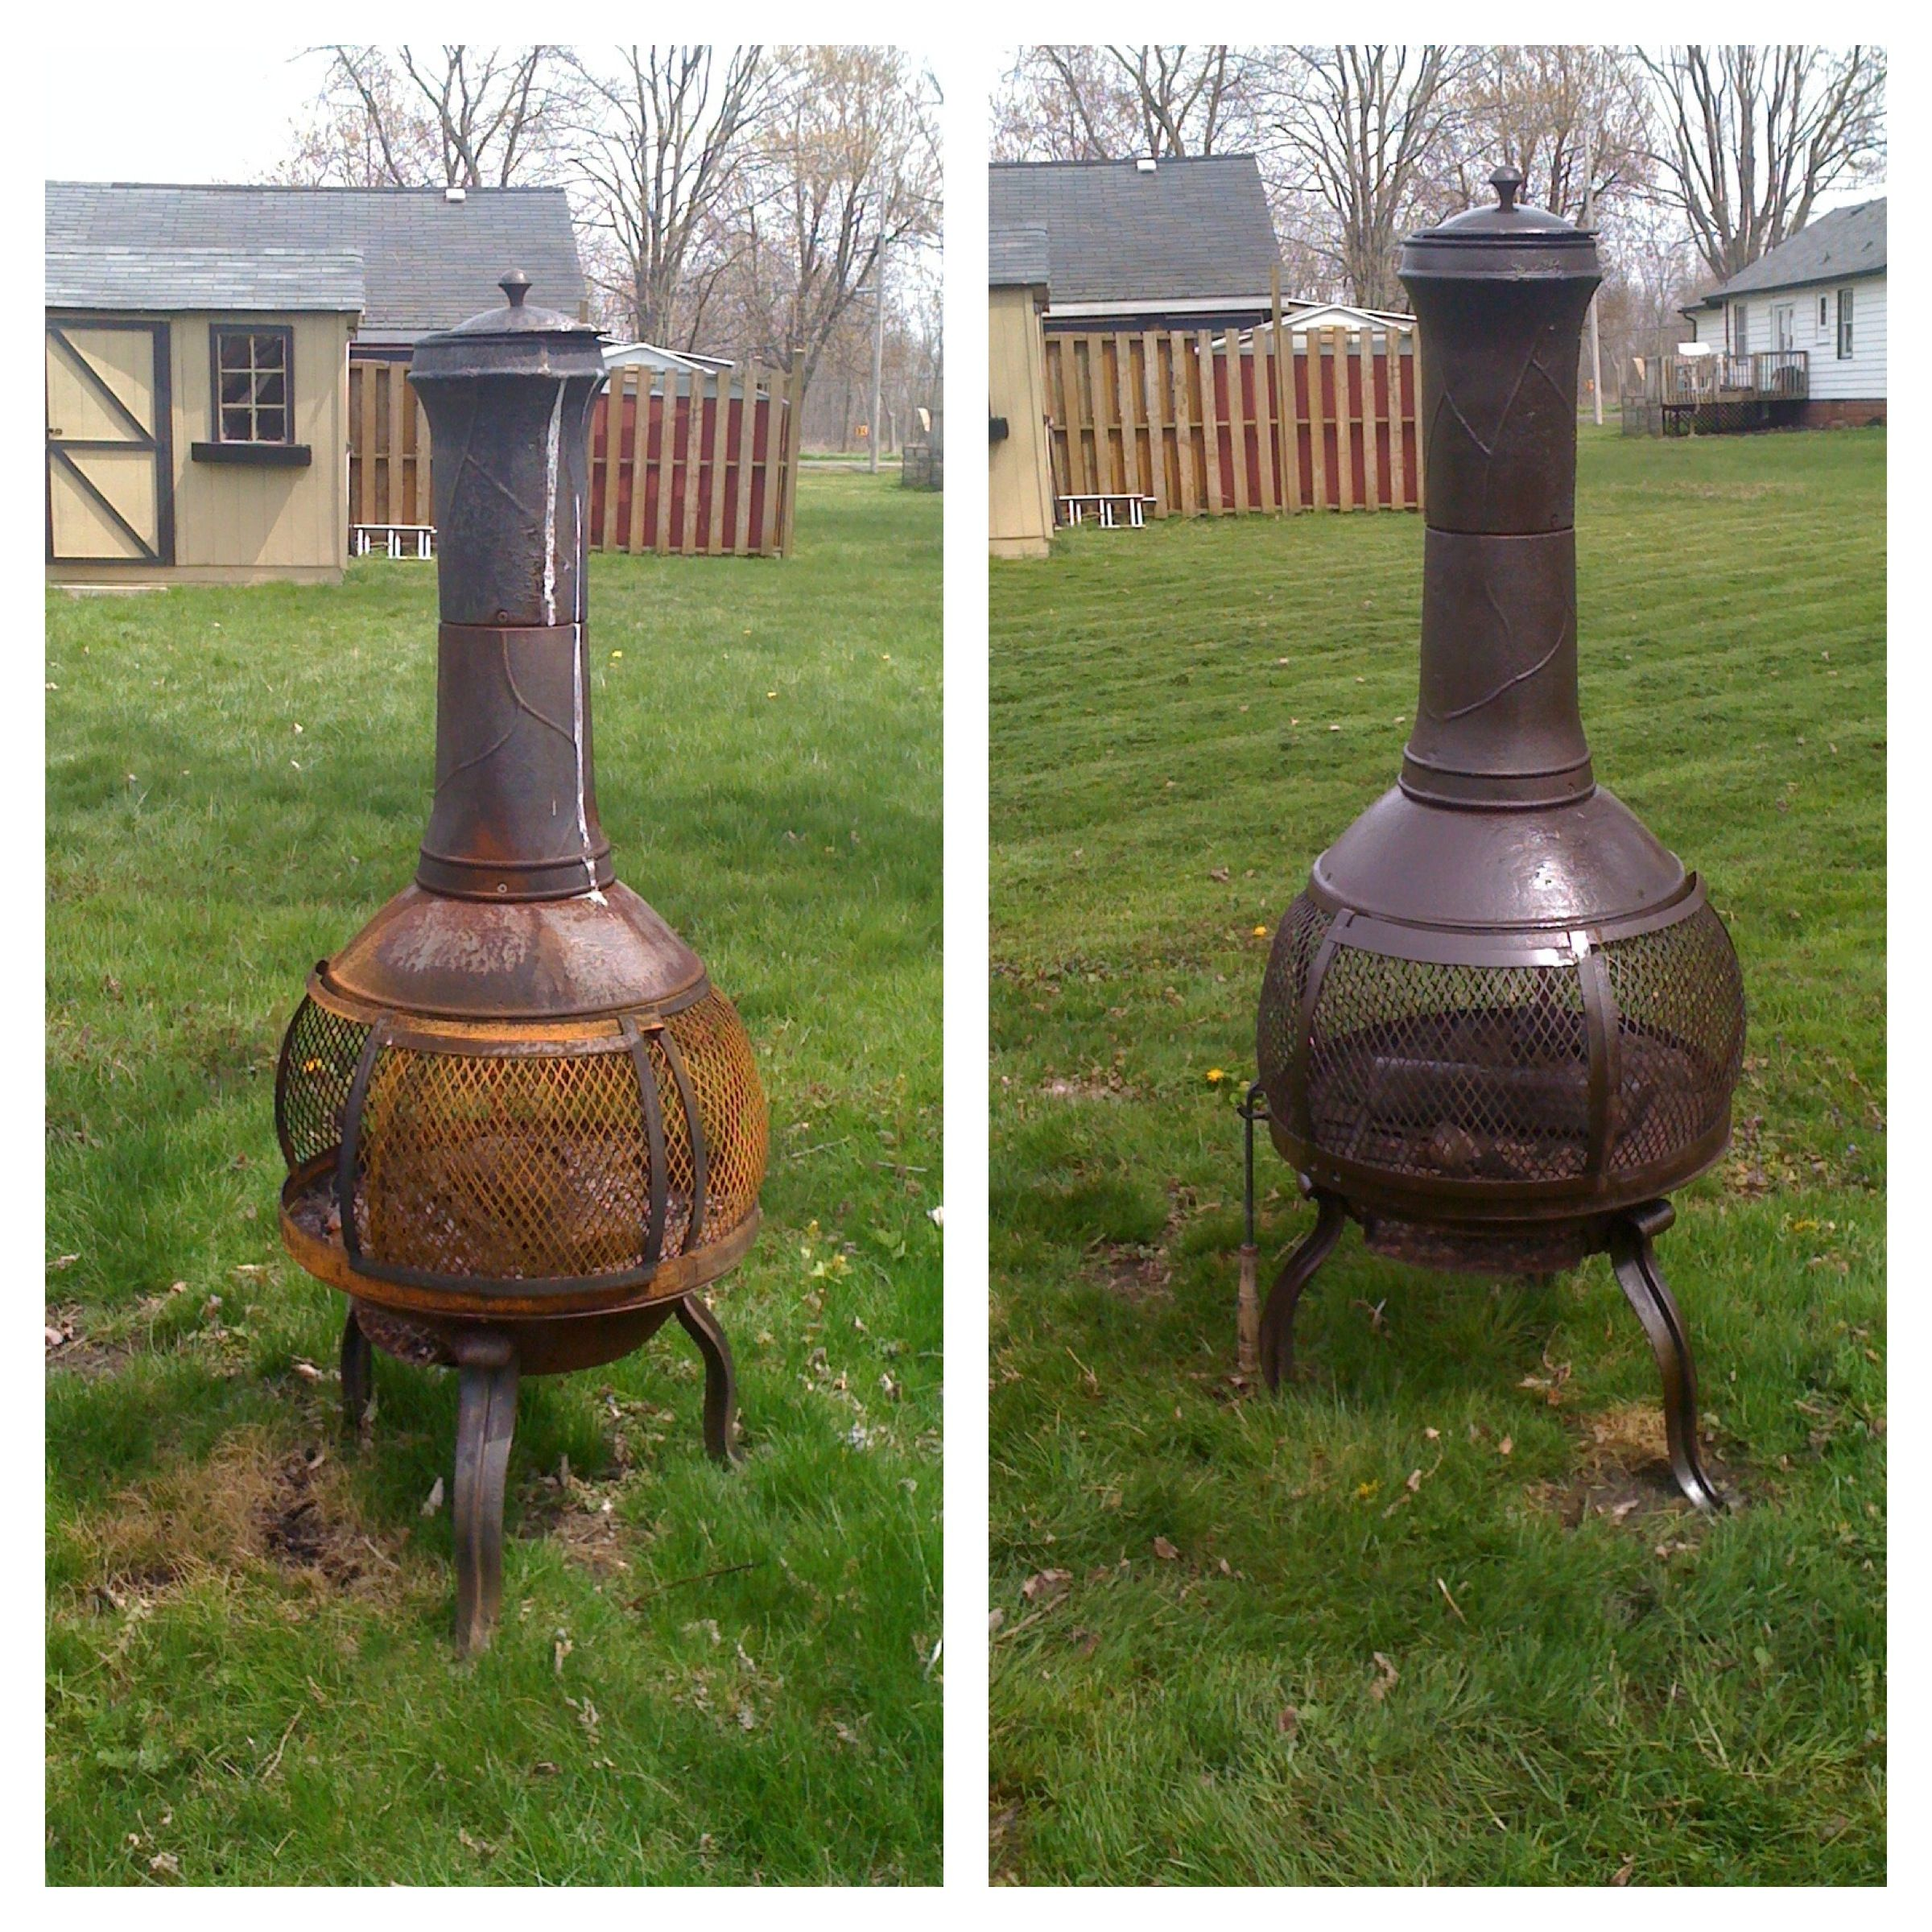 Chimnea Makeover 1 Scrub Chimnea With Tsp And Water 2 Spray With 2 Coats Of Rust Proof Spray Paint Easy Pe Chimnea How To Clean Rust Backyard Inspiration